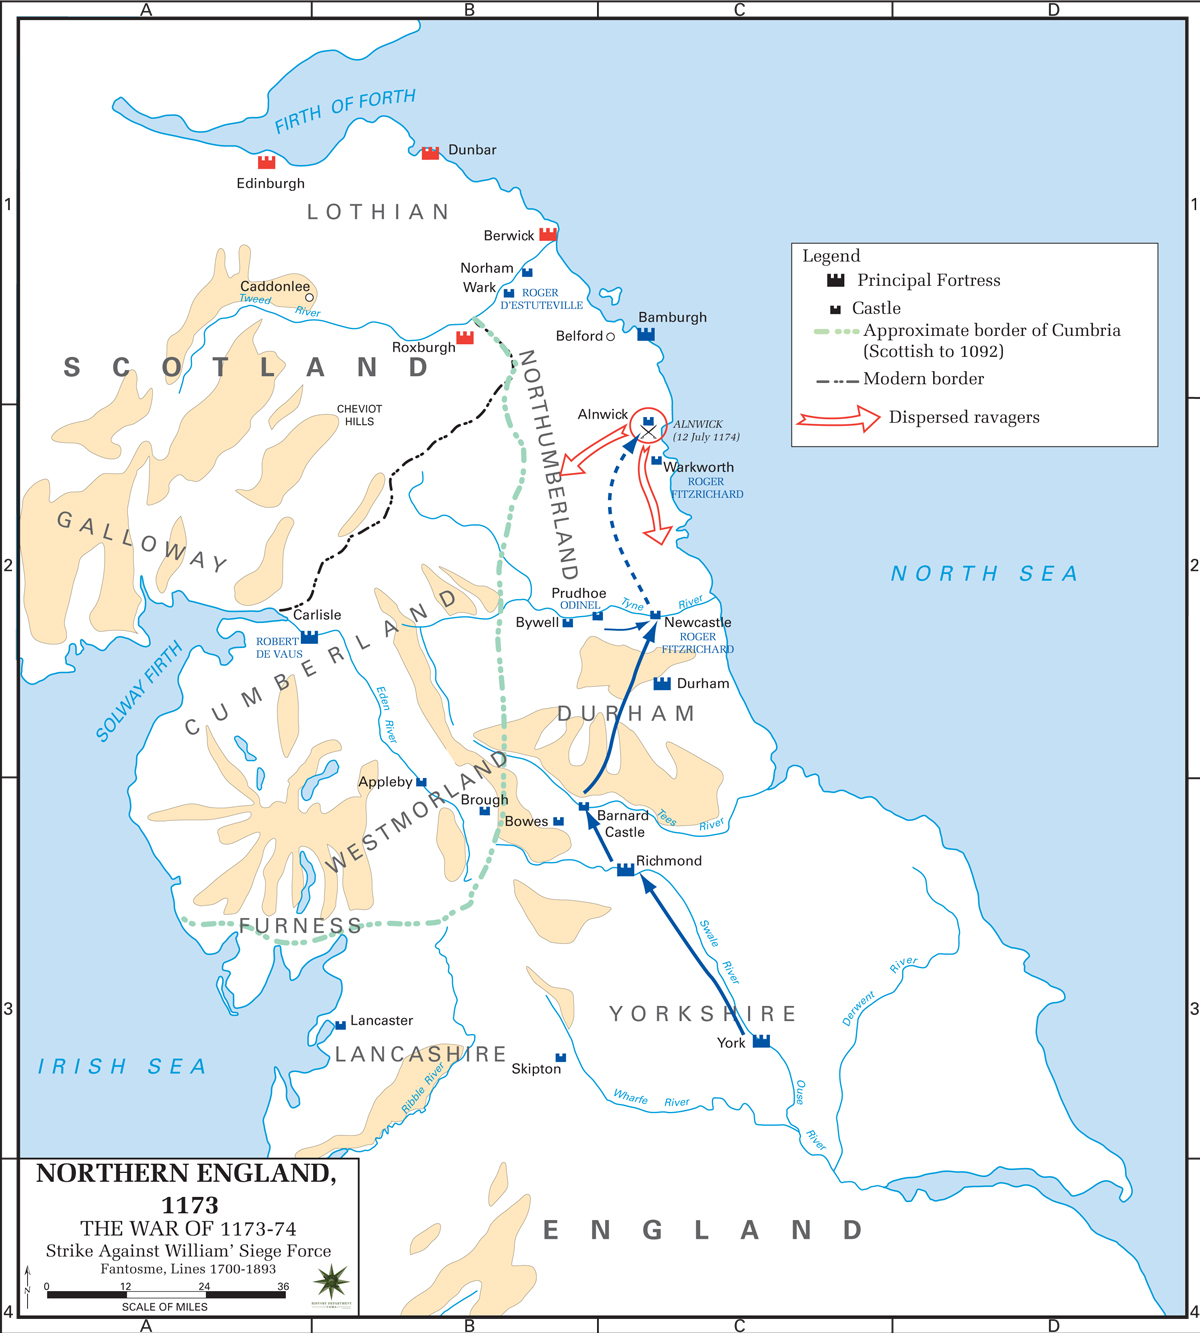 Map of Northern England - Anglo-Norman Rebellion 1173-1174 - Strike Against William